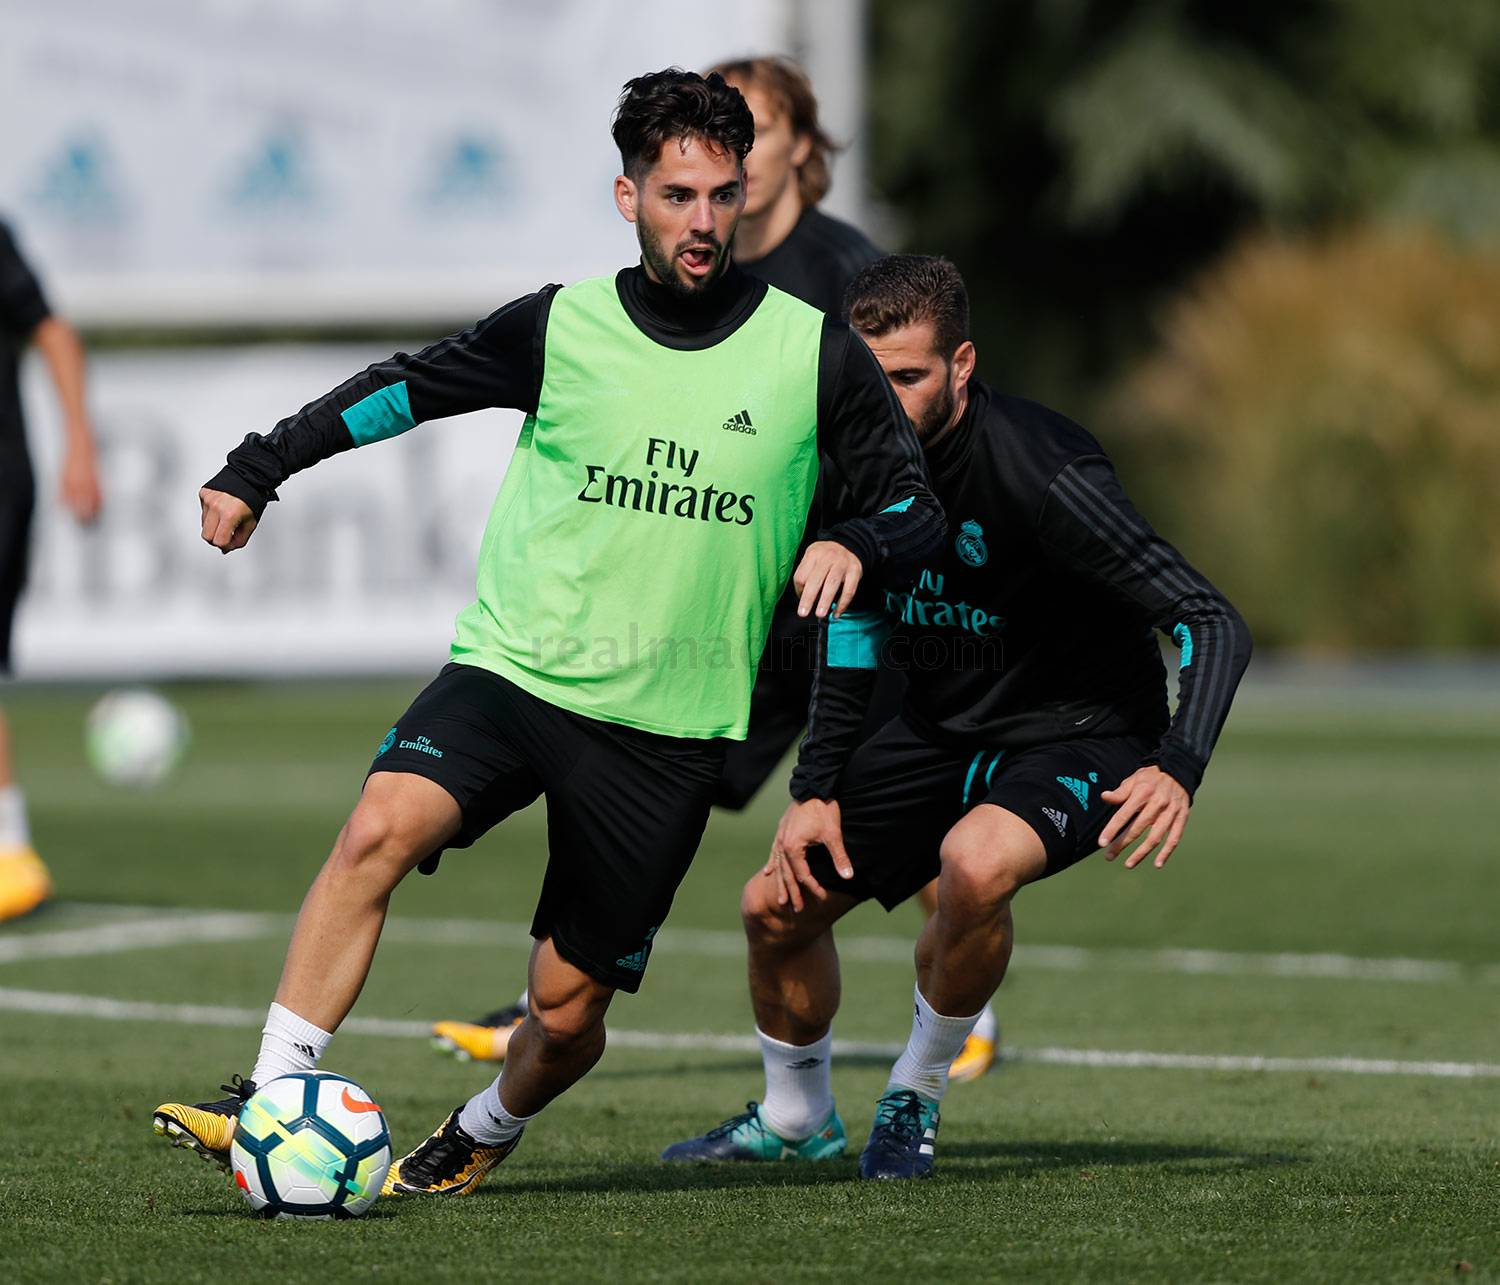 Real Madrid - Entrenamiento del Real Madrid - 16-09-2017